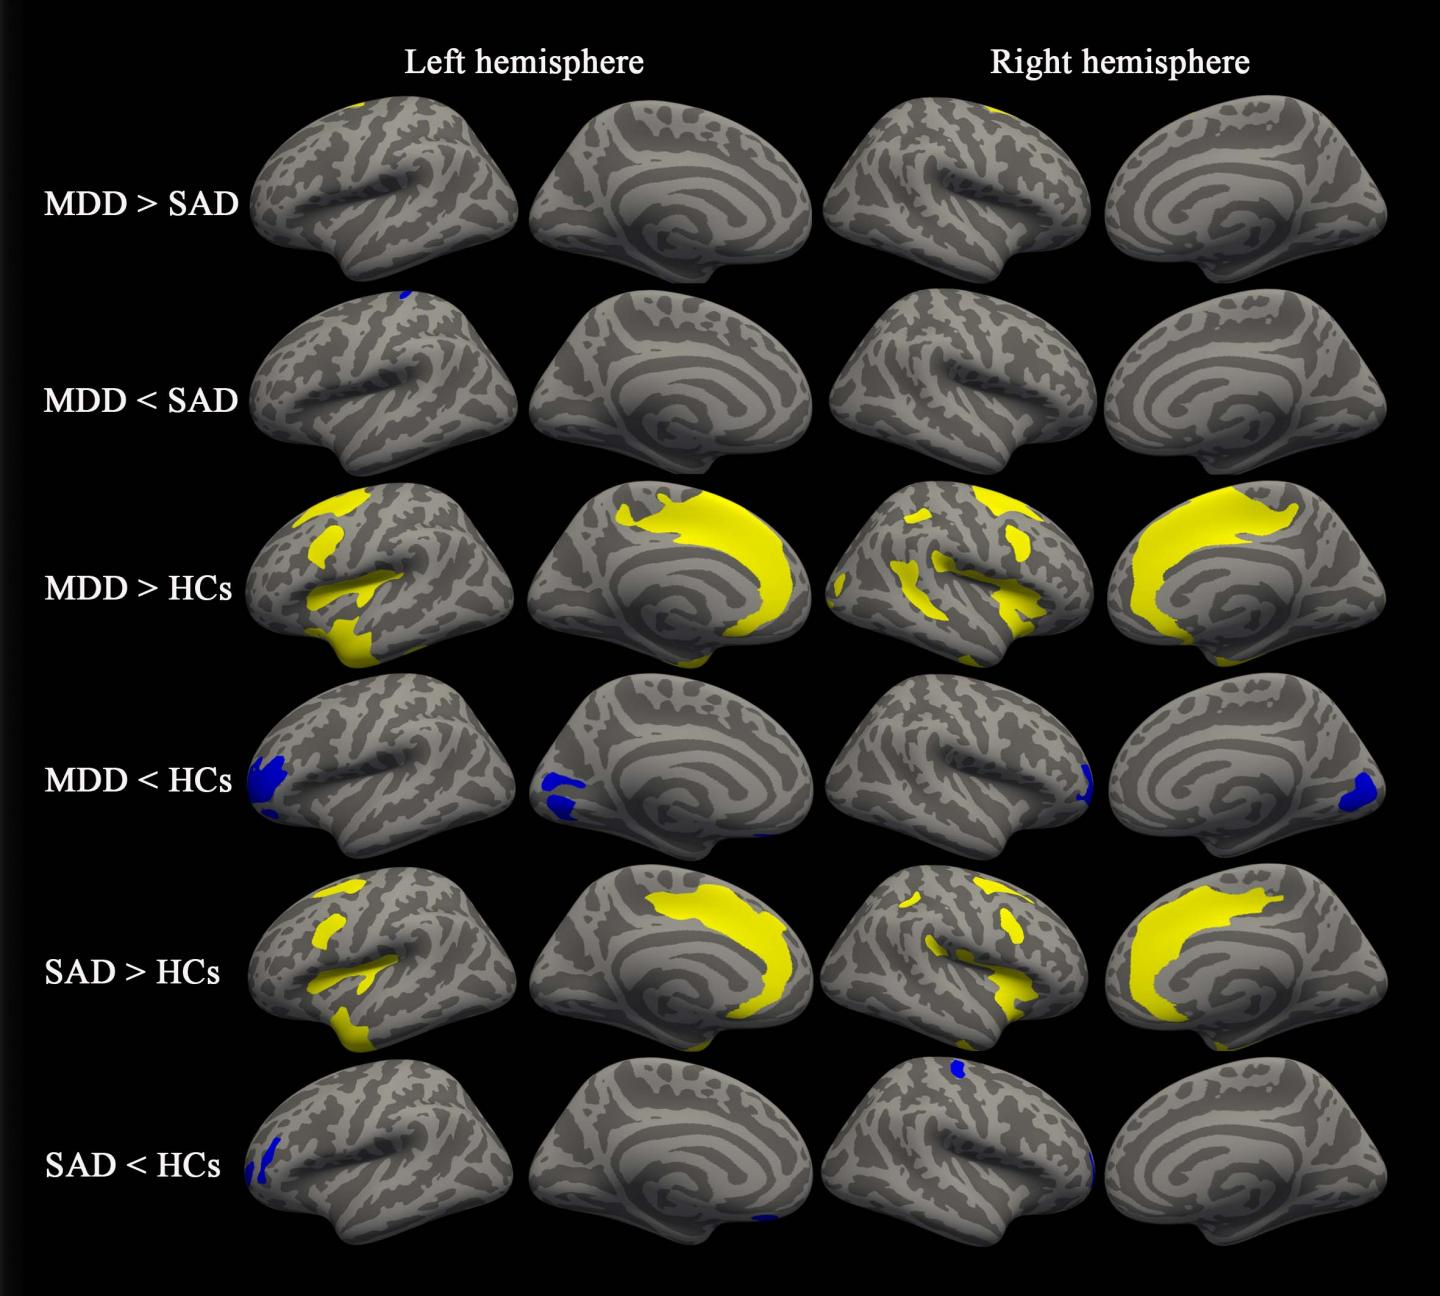 Between-Group Results for Cortical Thickness